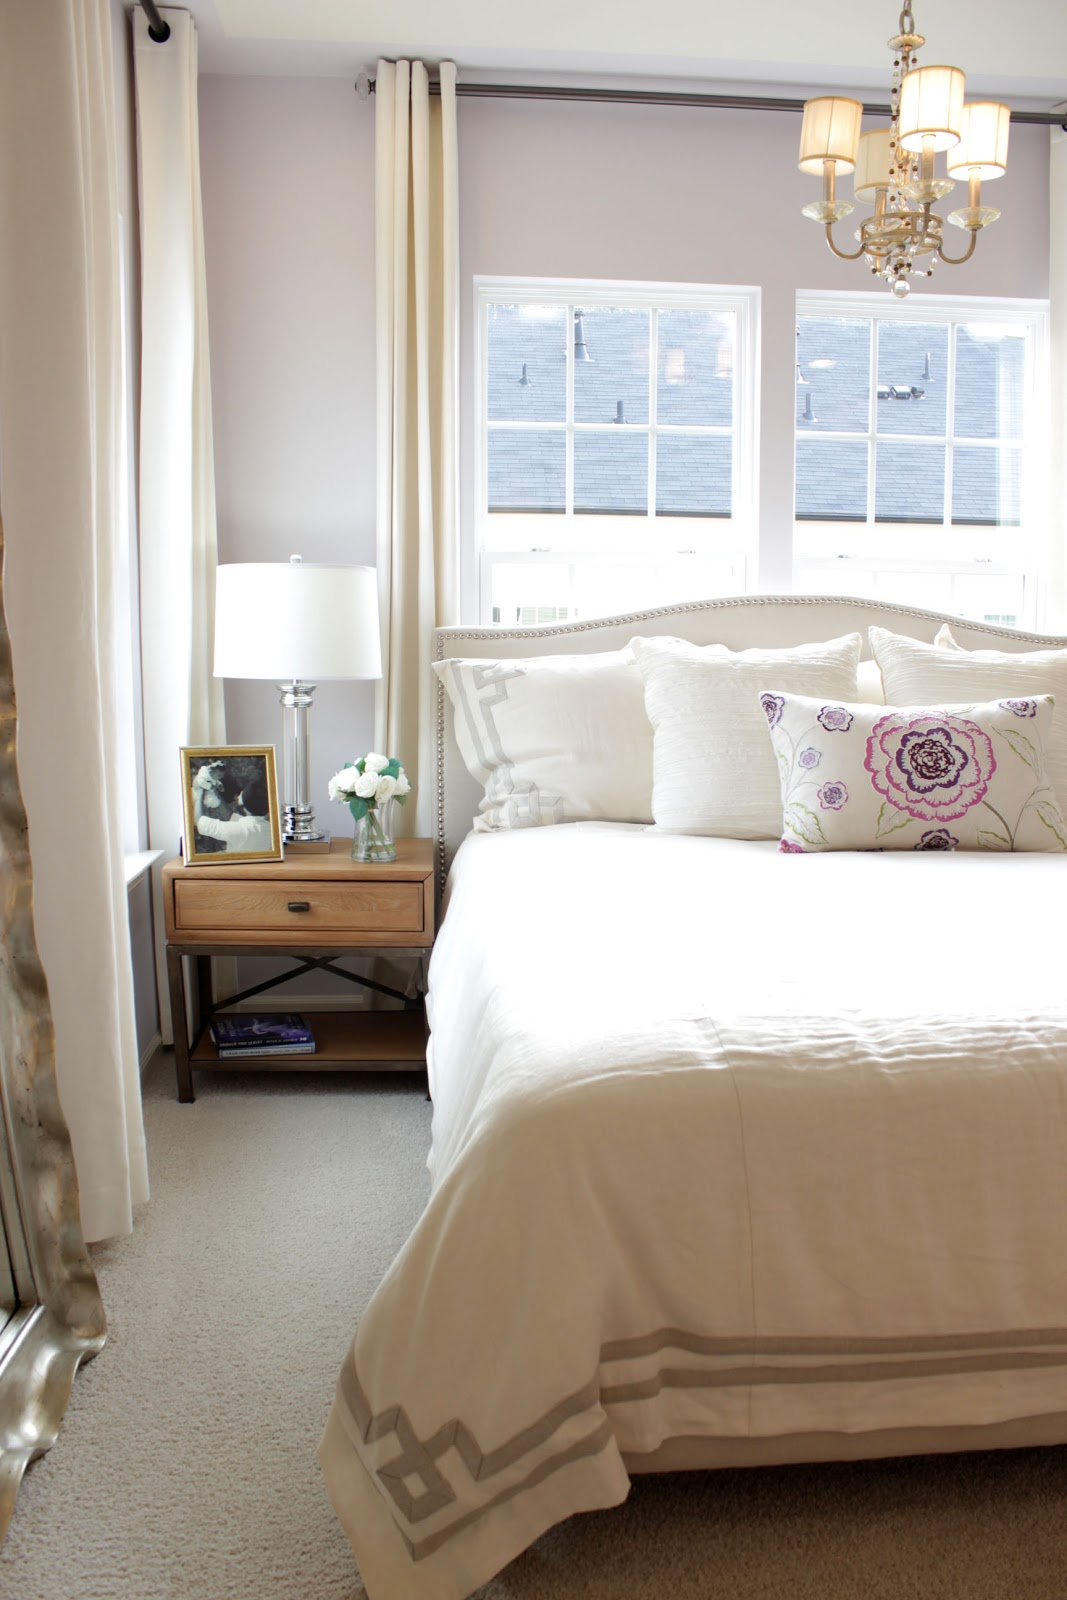 Transform your plain home by dressing up your windows with long drapes